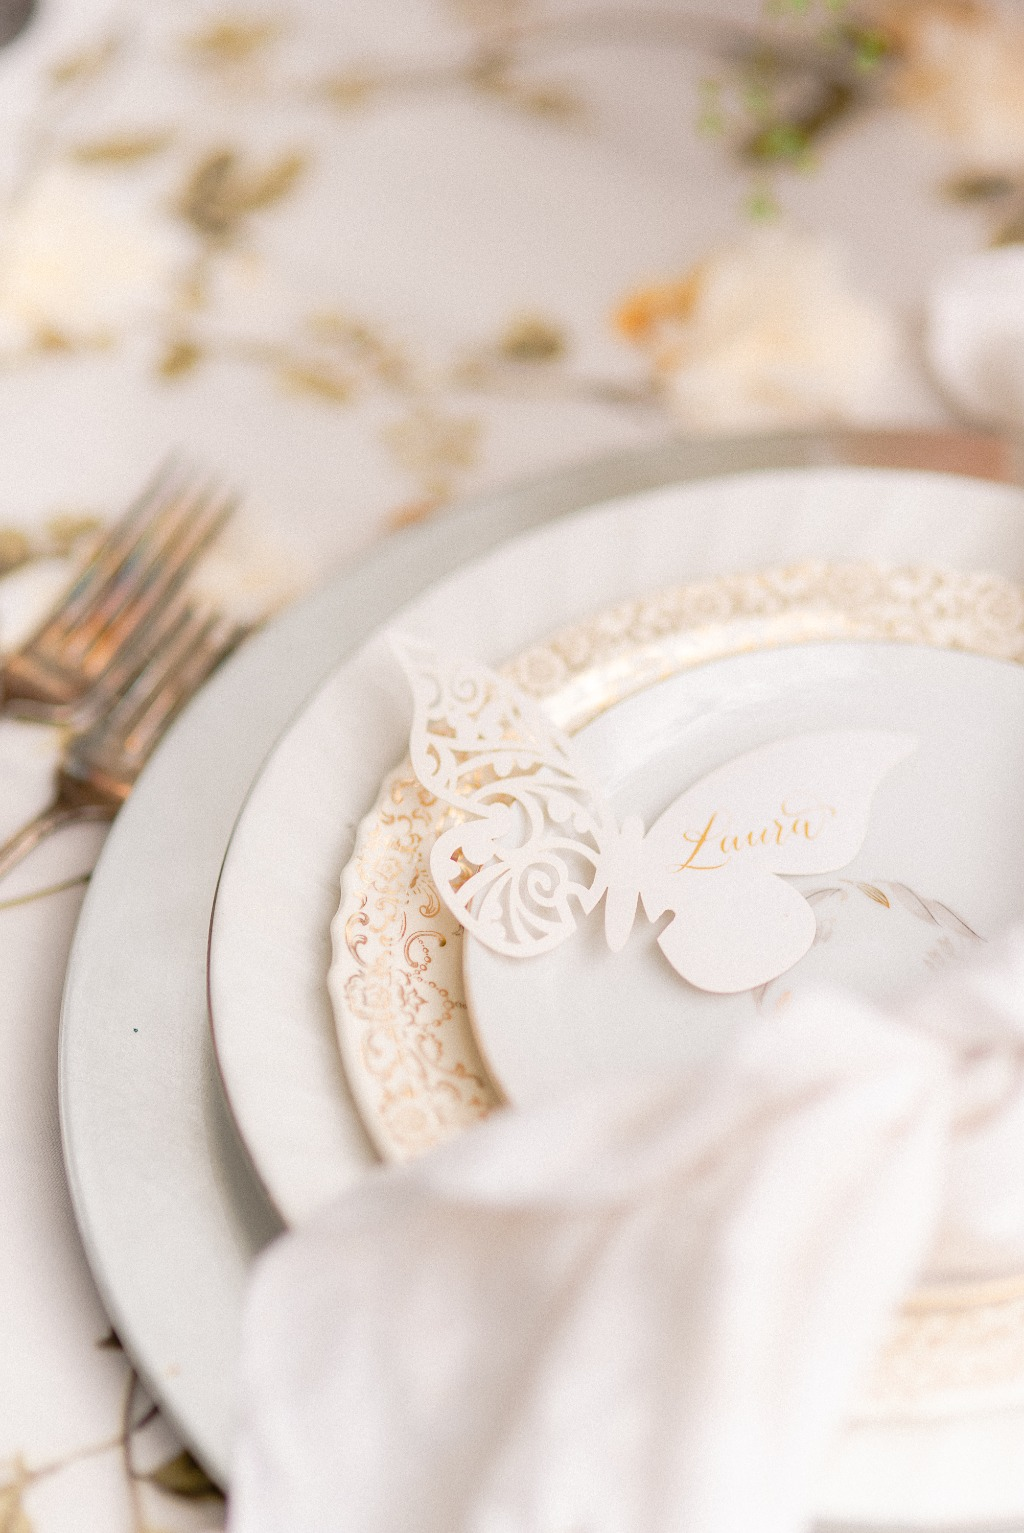 As a Designer, the details are my favorite! The details pictured here are so effortlessly elegant. Vintage tableware pieces that tell